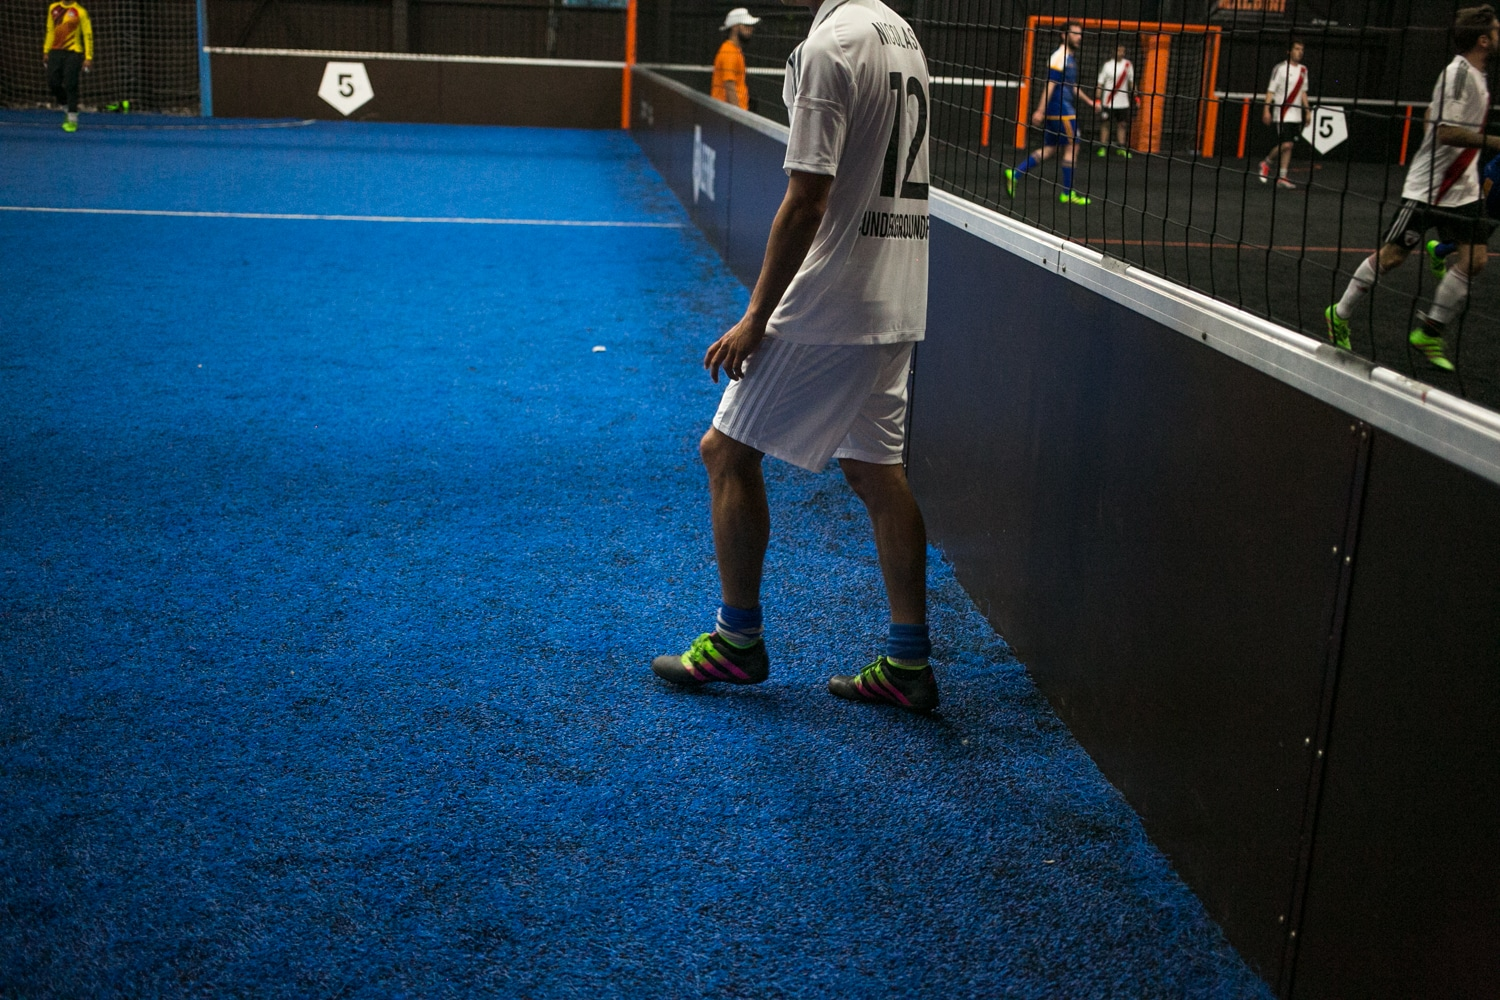 underground-fc-adidas-ligue-x-session-2016-7